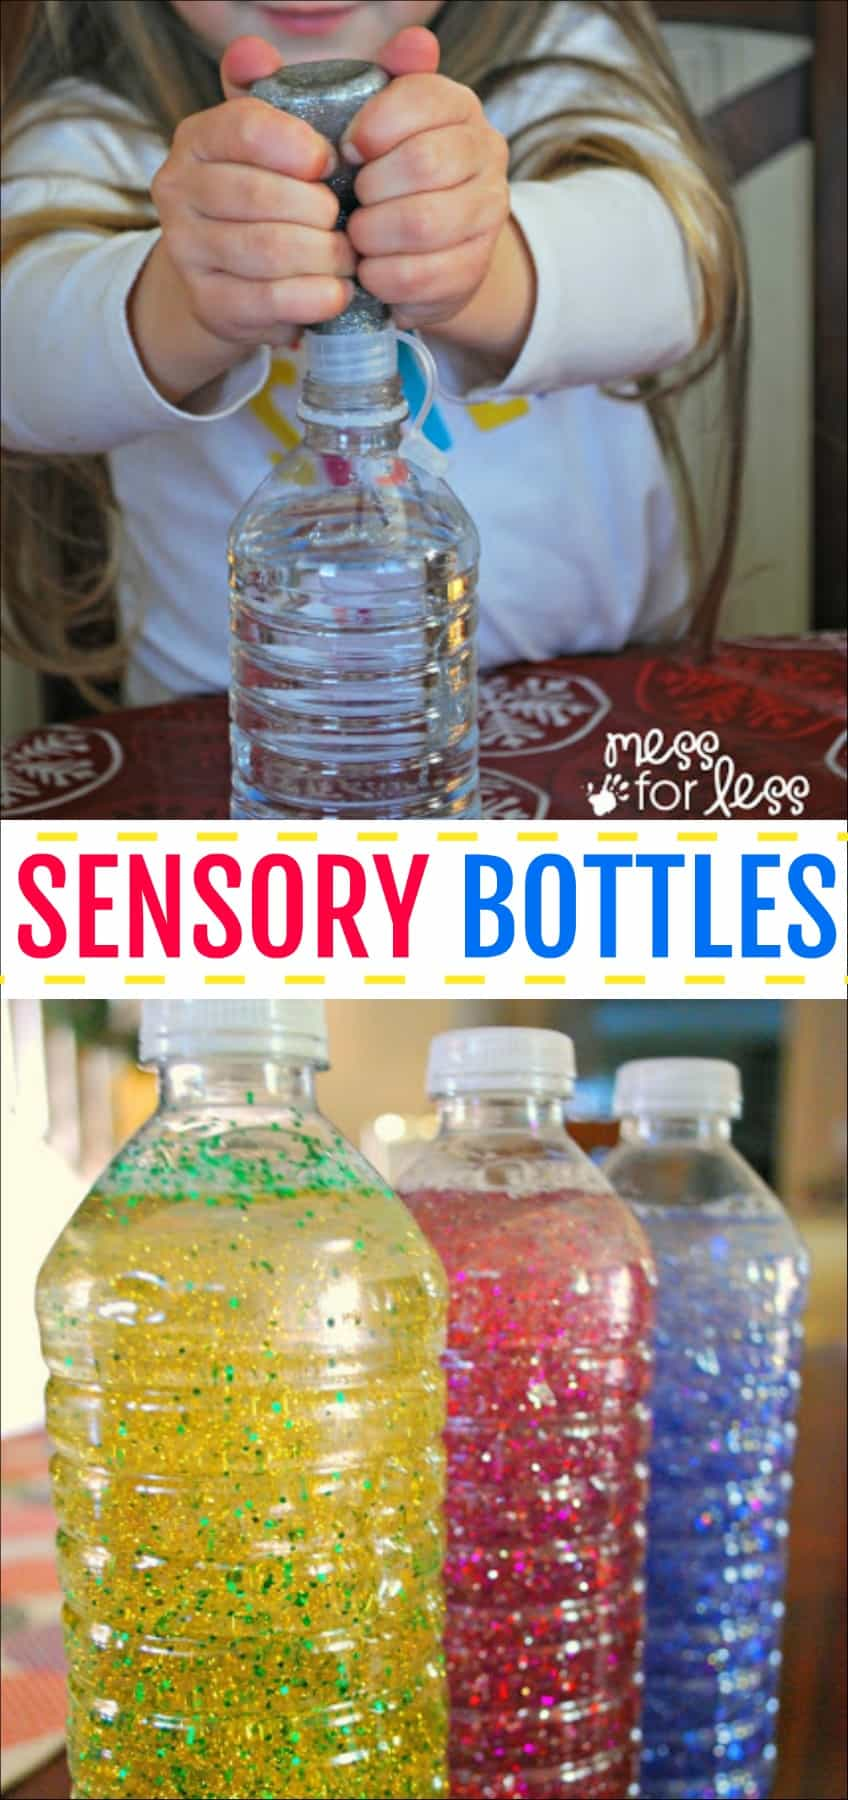 Sensory bottles - these calming bottles are great for little ones to explore and for preschoolers to use during a cooling off period. #sensorybottles #calmingbottles #mindfulnessjar